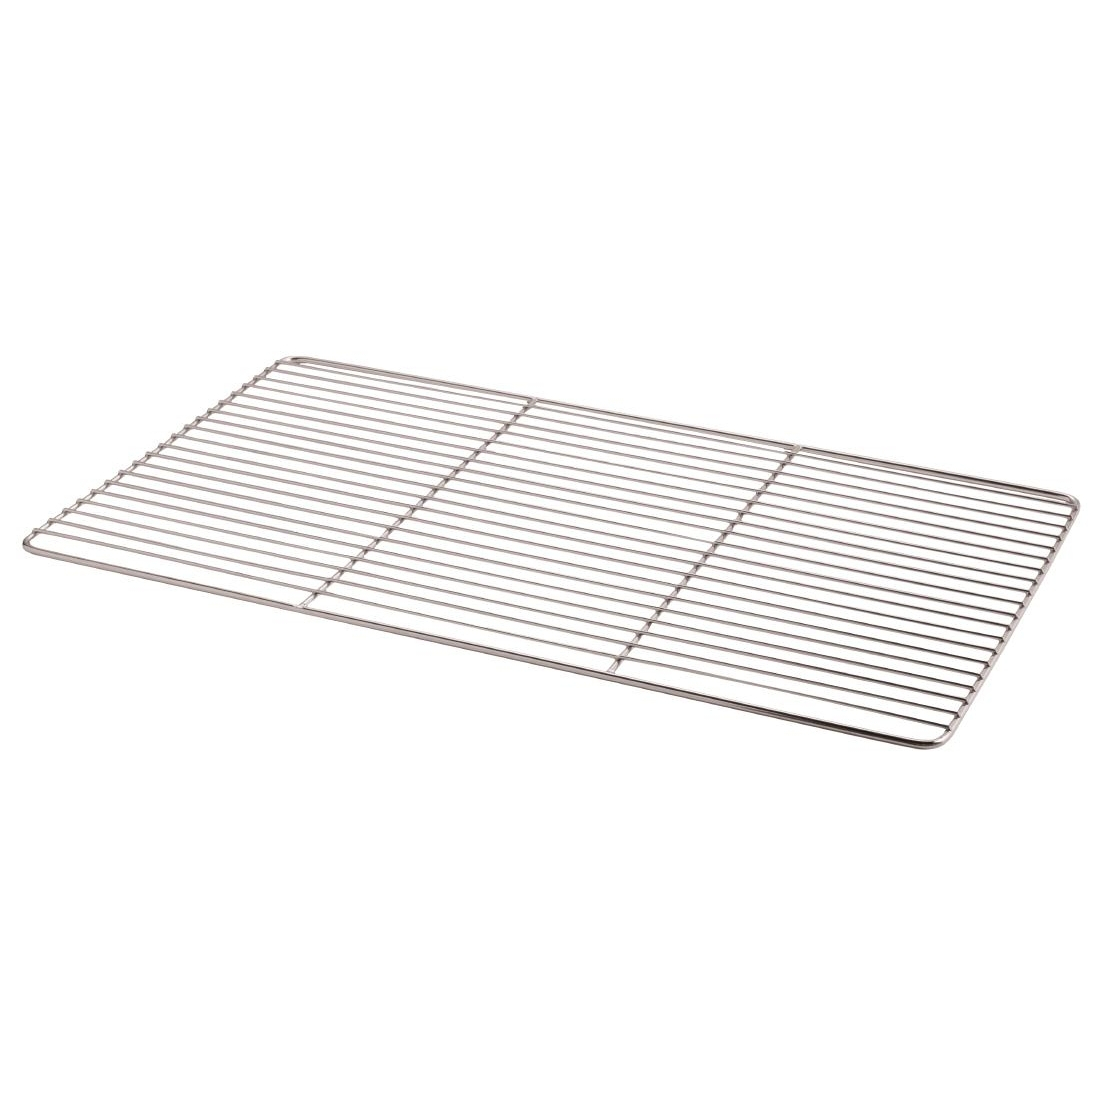 Vogue Stainless Steel Oven Grid 53x32cm